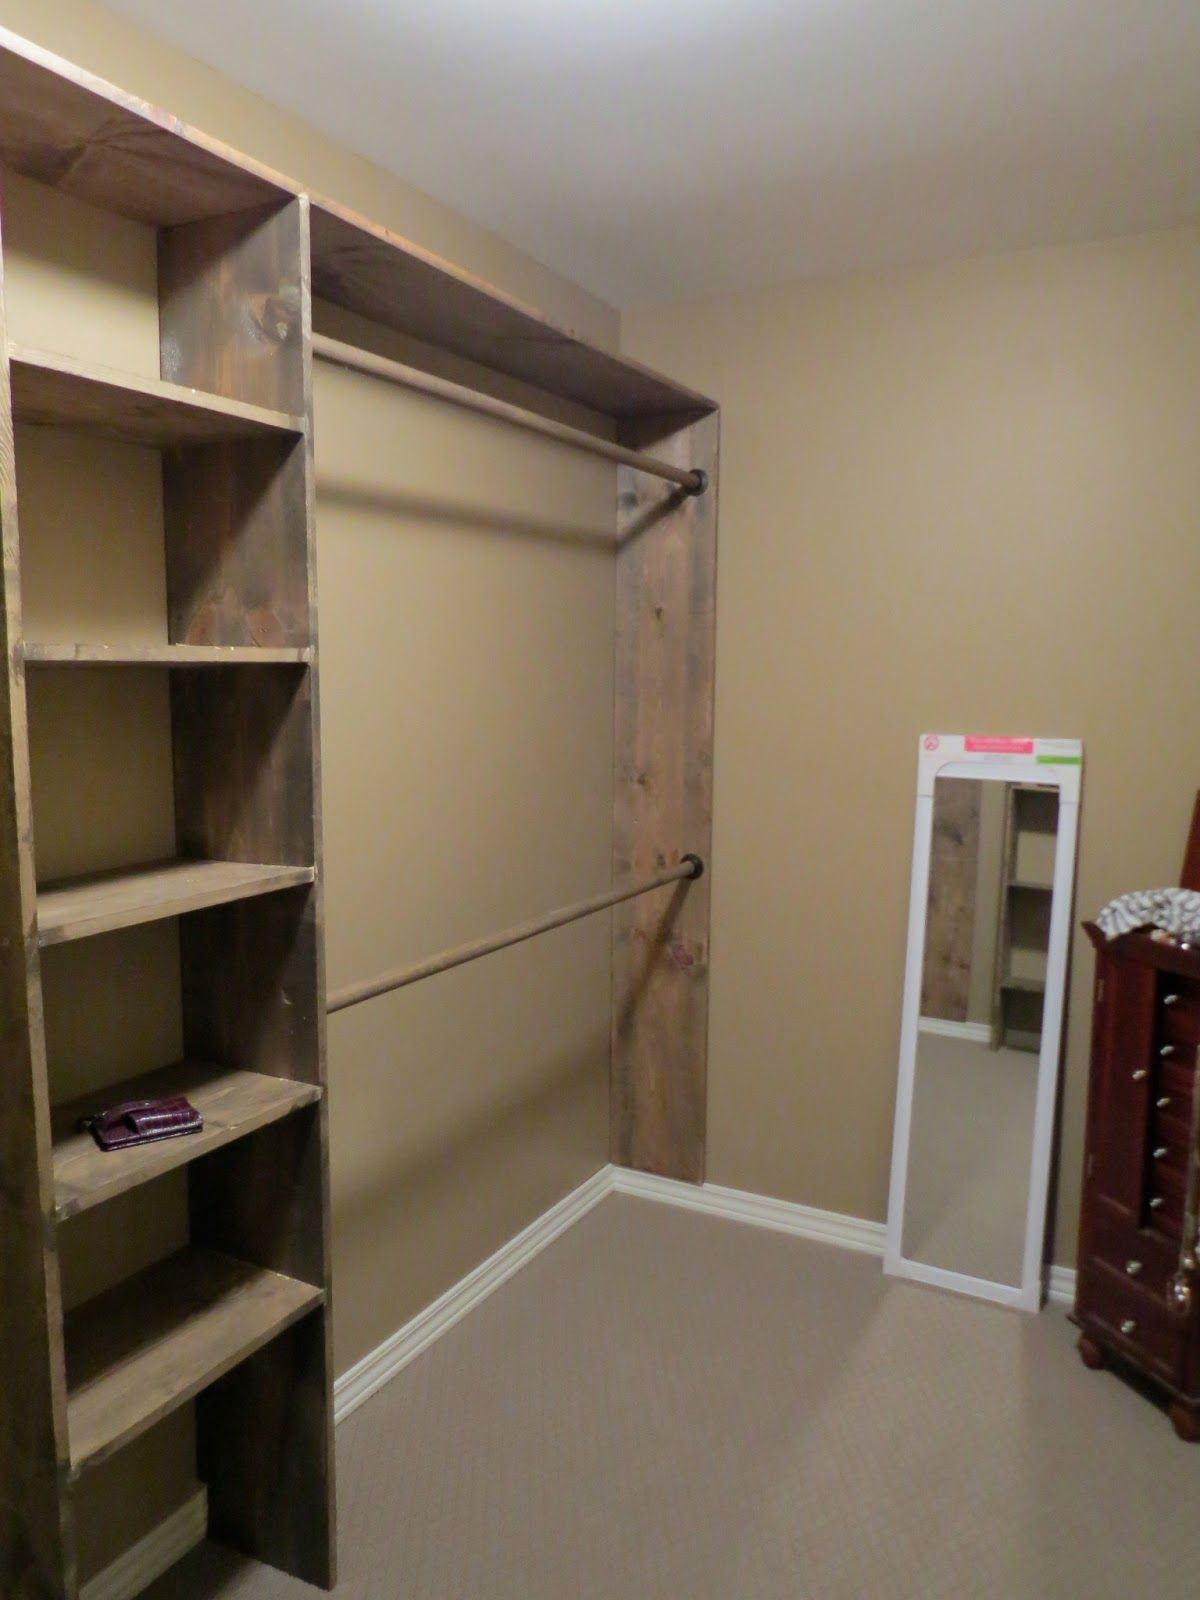 Do It Yourself Home Design: Let's Just Build A House!: Walk-in Closets: No More Living